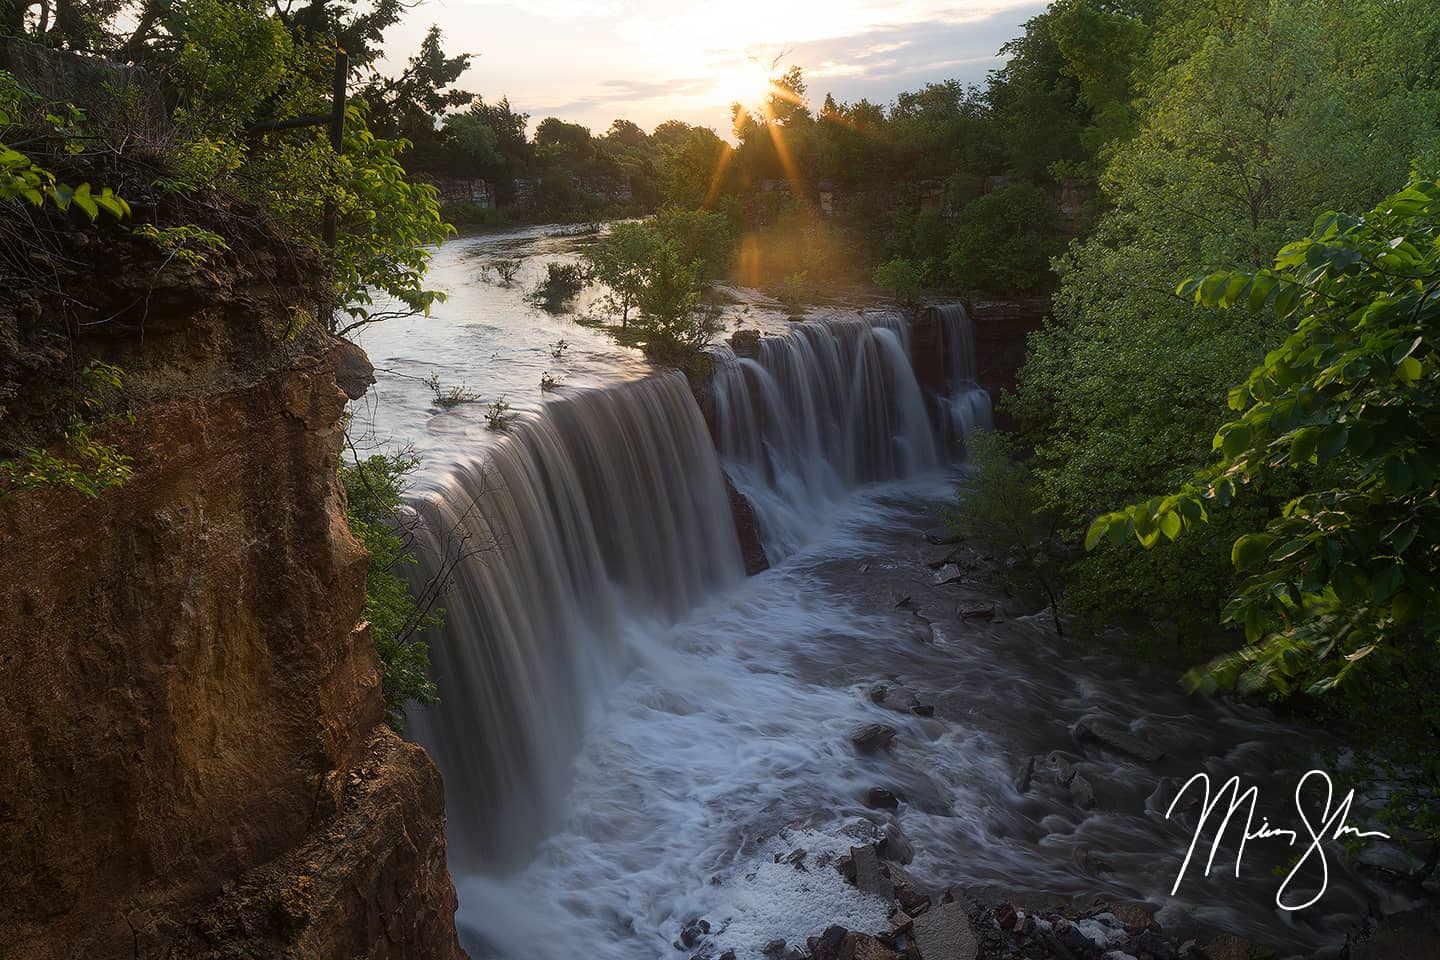 Open edition fine art print of Cowley Falls Sunrise from Mickey Shannon Photography. Location: Cowley Falls, Arkansas City, Kansas